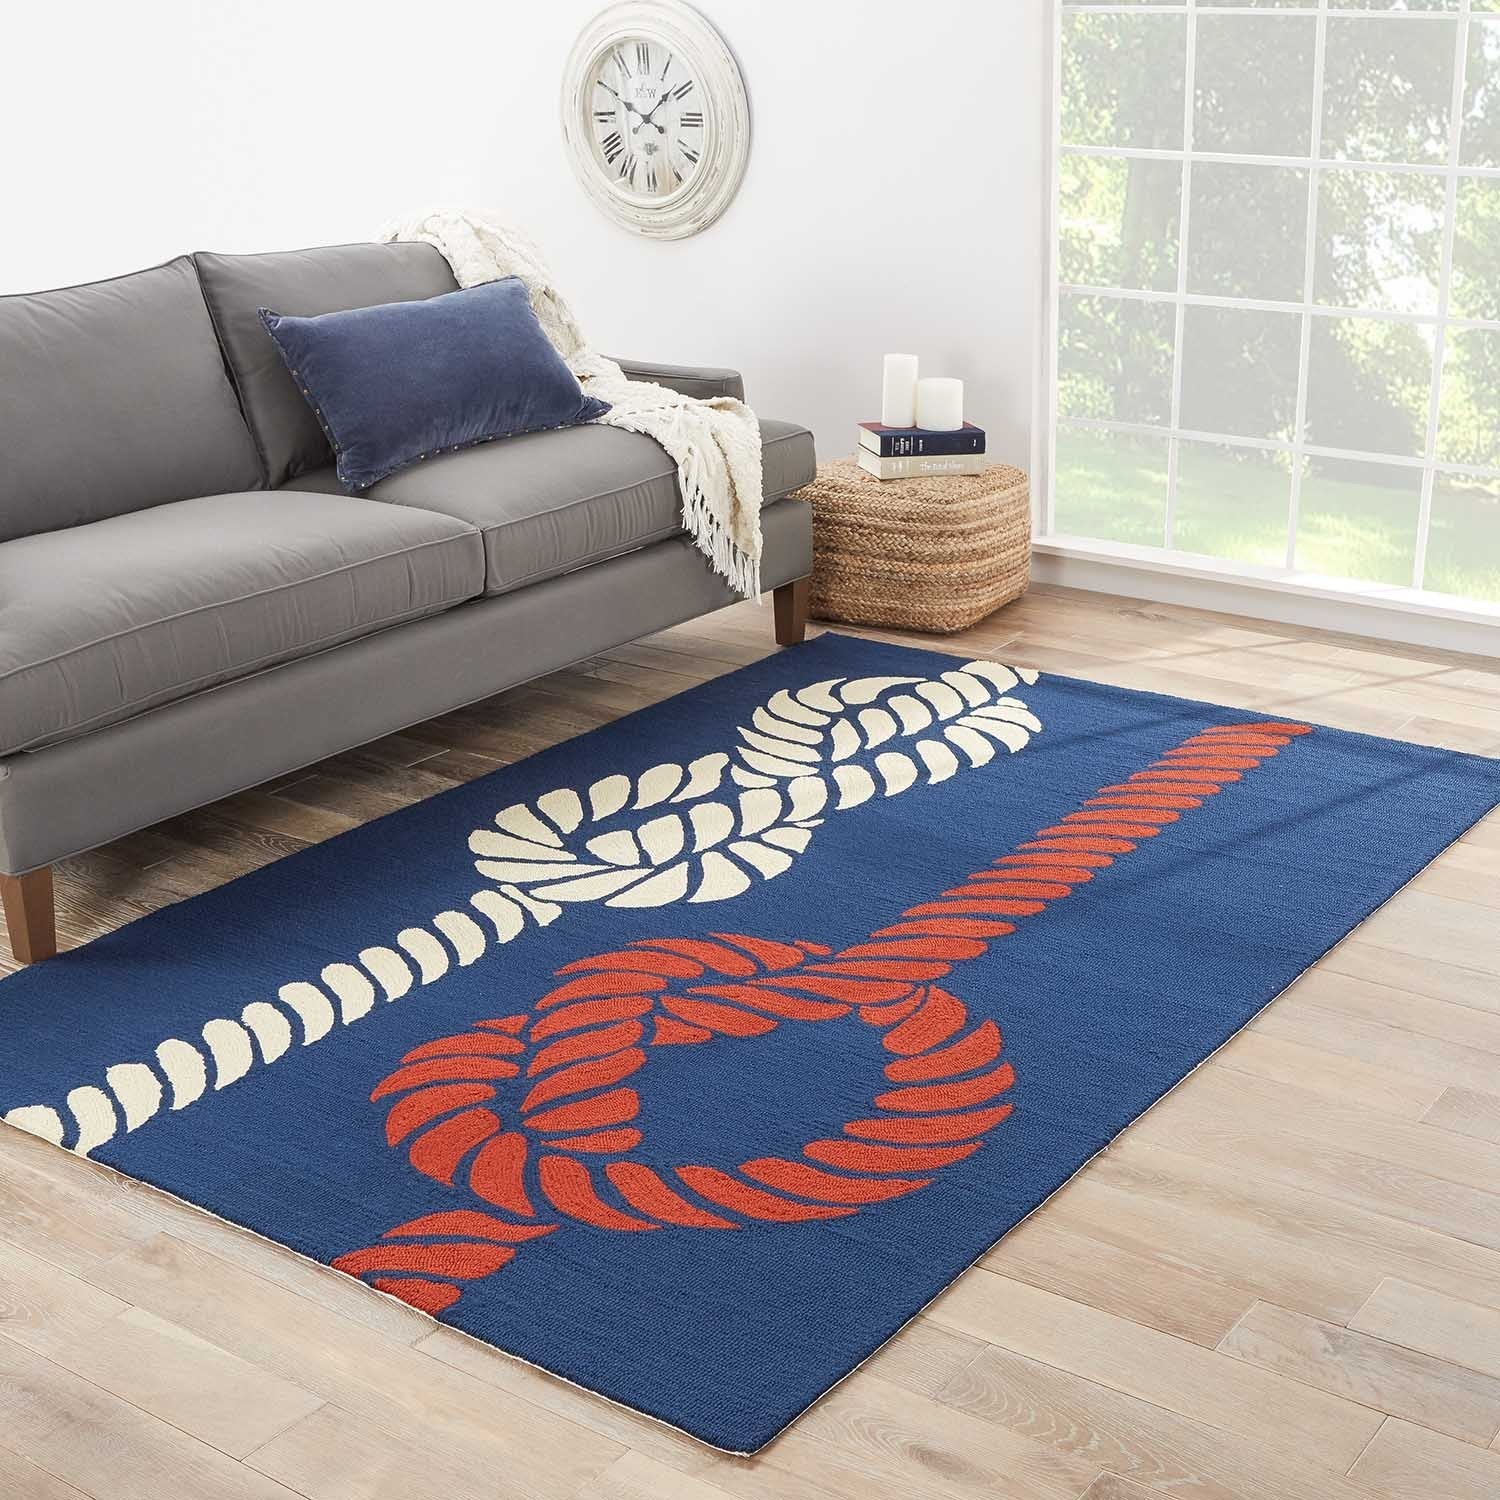 JRCPL Handmade Abstract Pattern Blue/ Red Polypropylene Area Rug (5'x7'6) at Sears.com